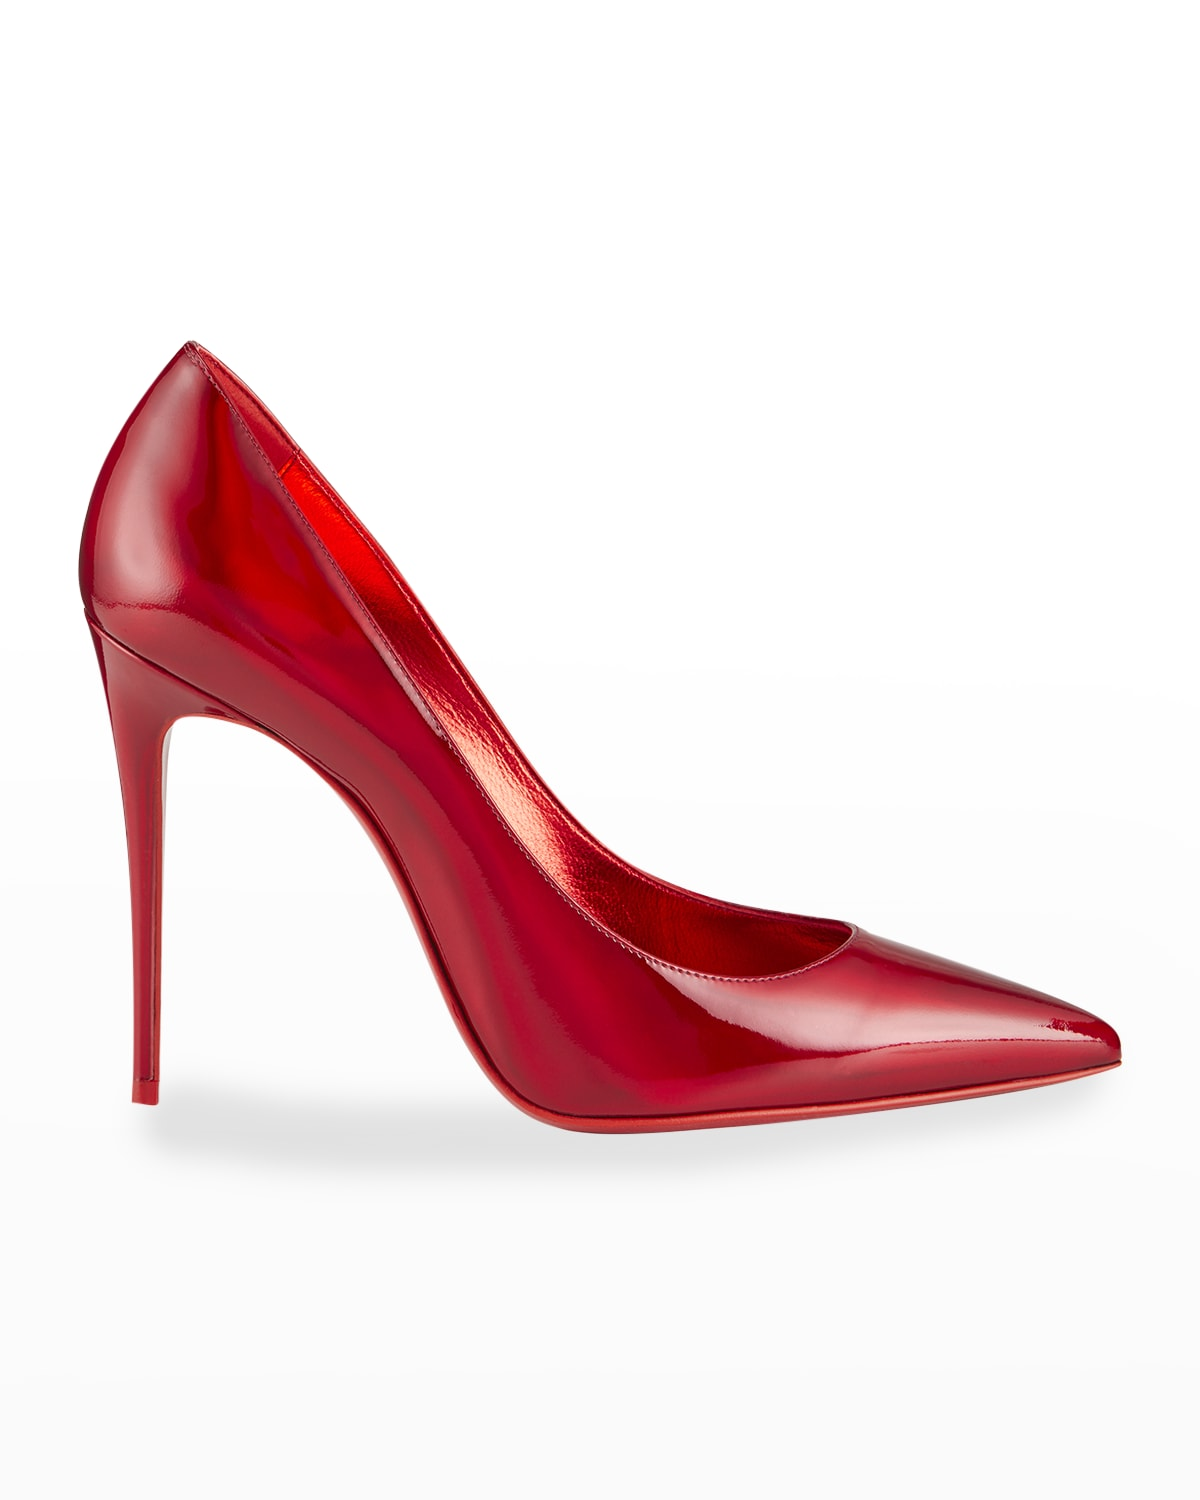 Kate Patent Pointed-Toe Red Sole High-Heel Pumps